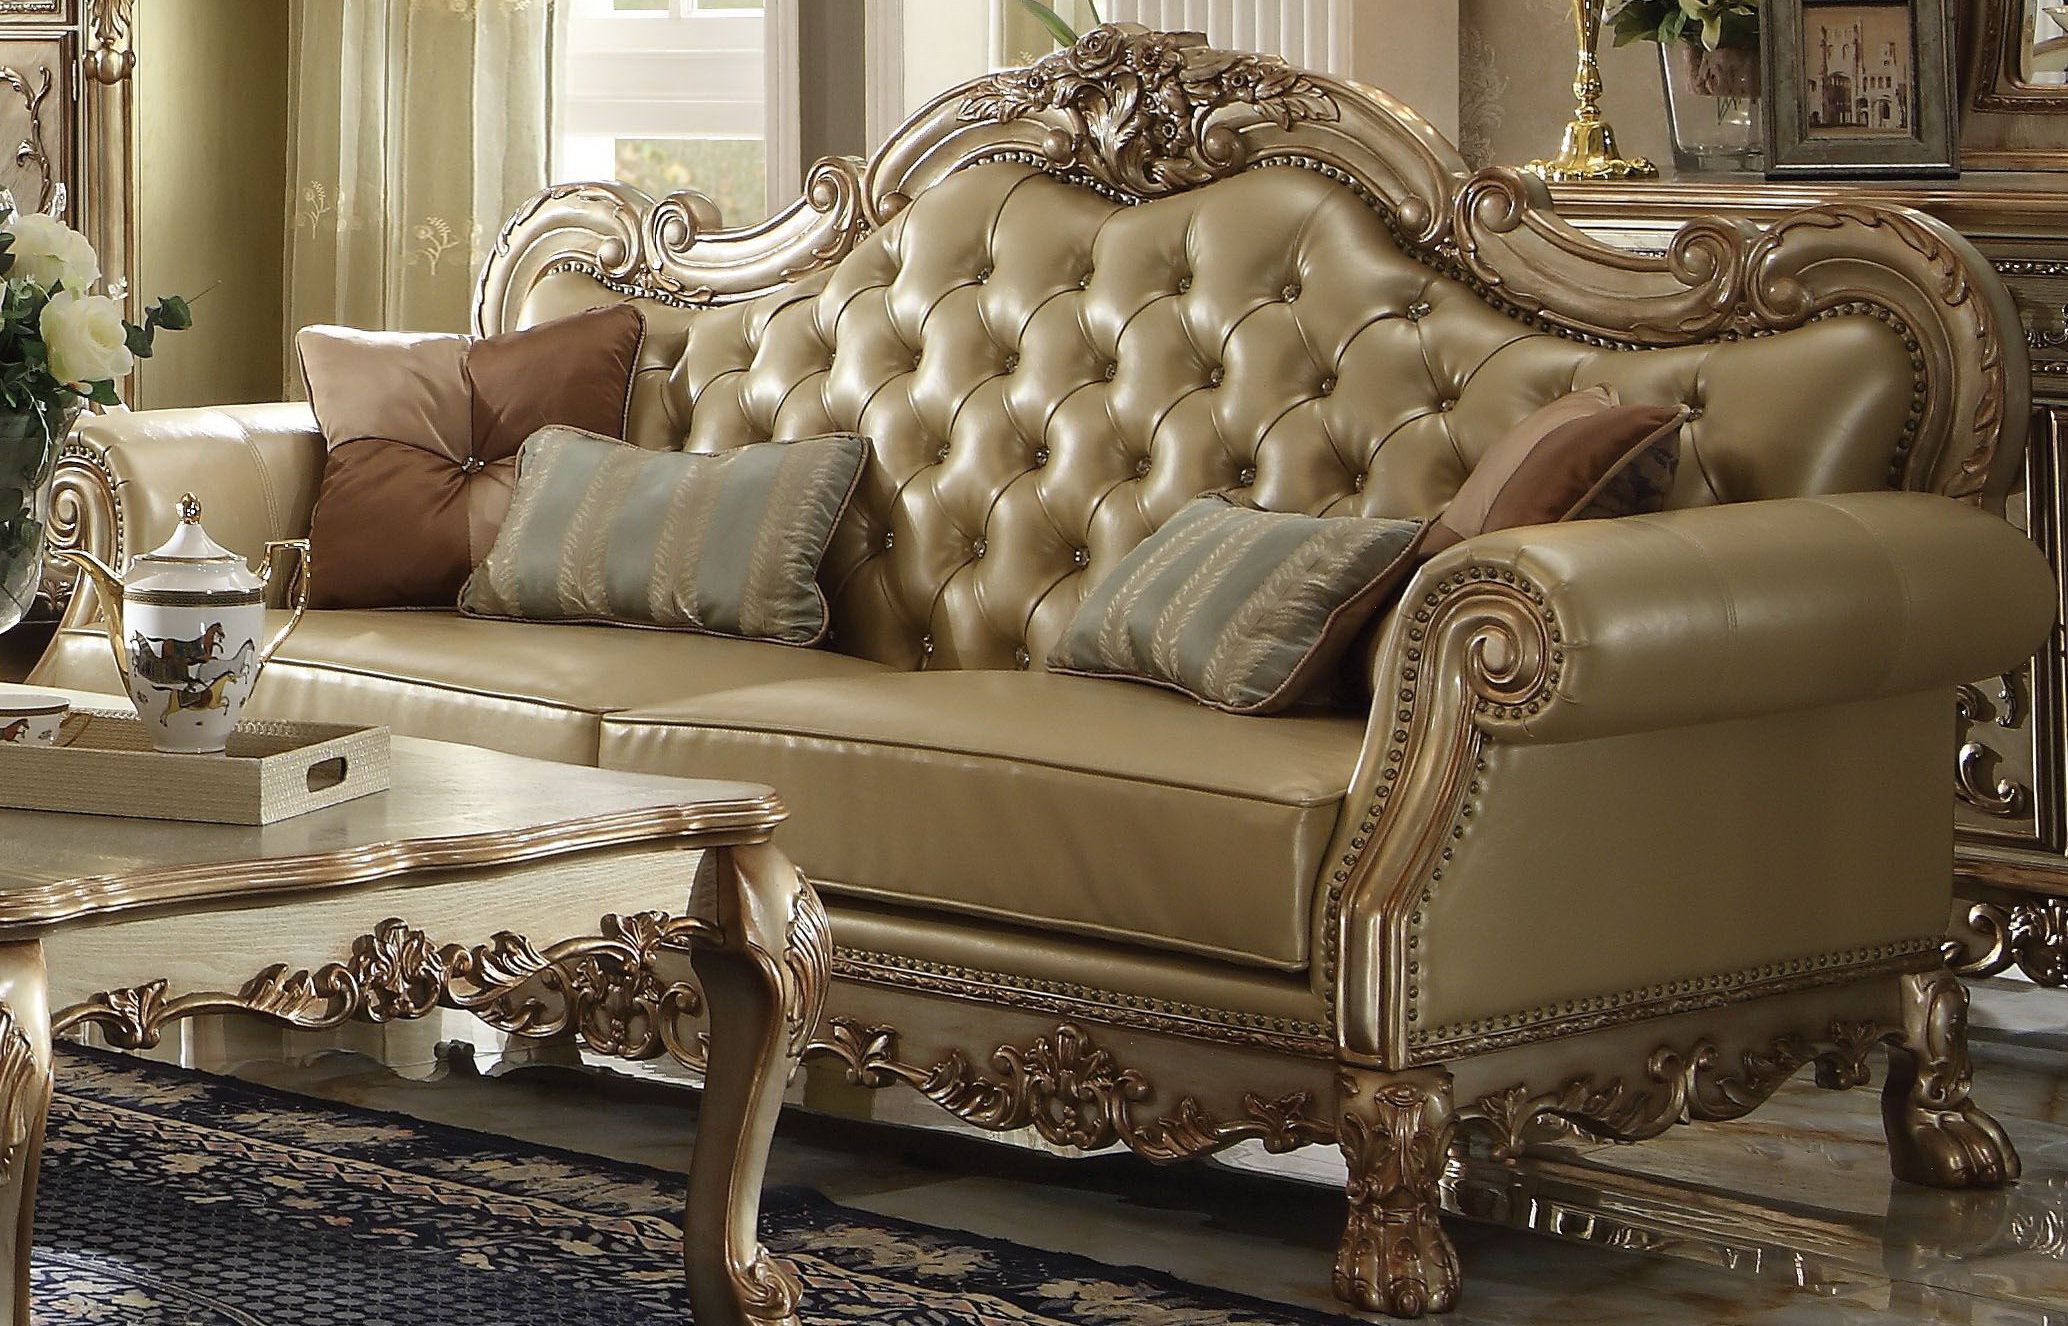 Astoria Grand Marissa Sofa | Wayfair For Marissa Sofa Chairs (Image 2 of 25)